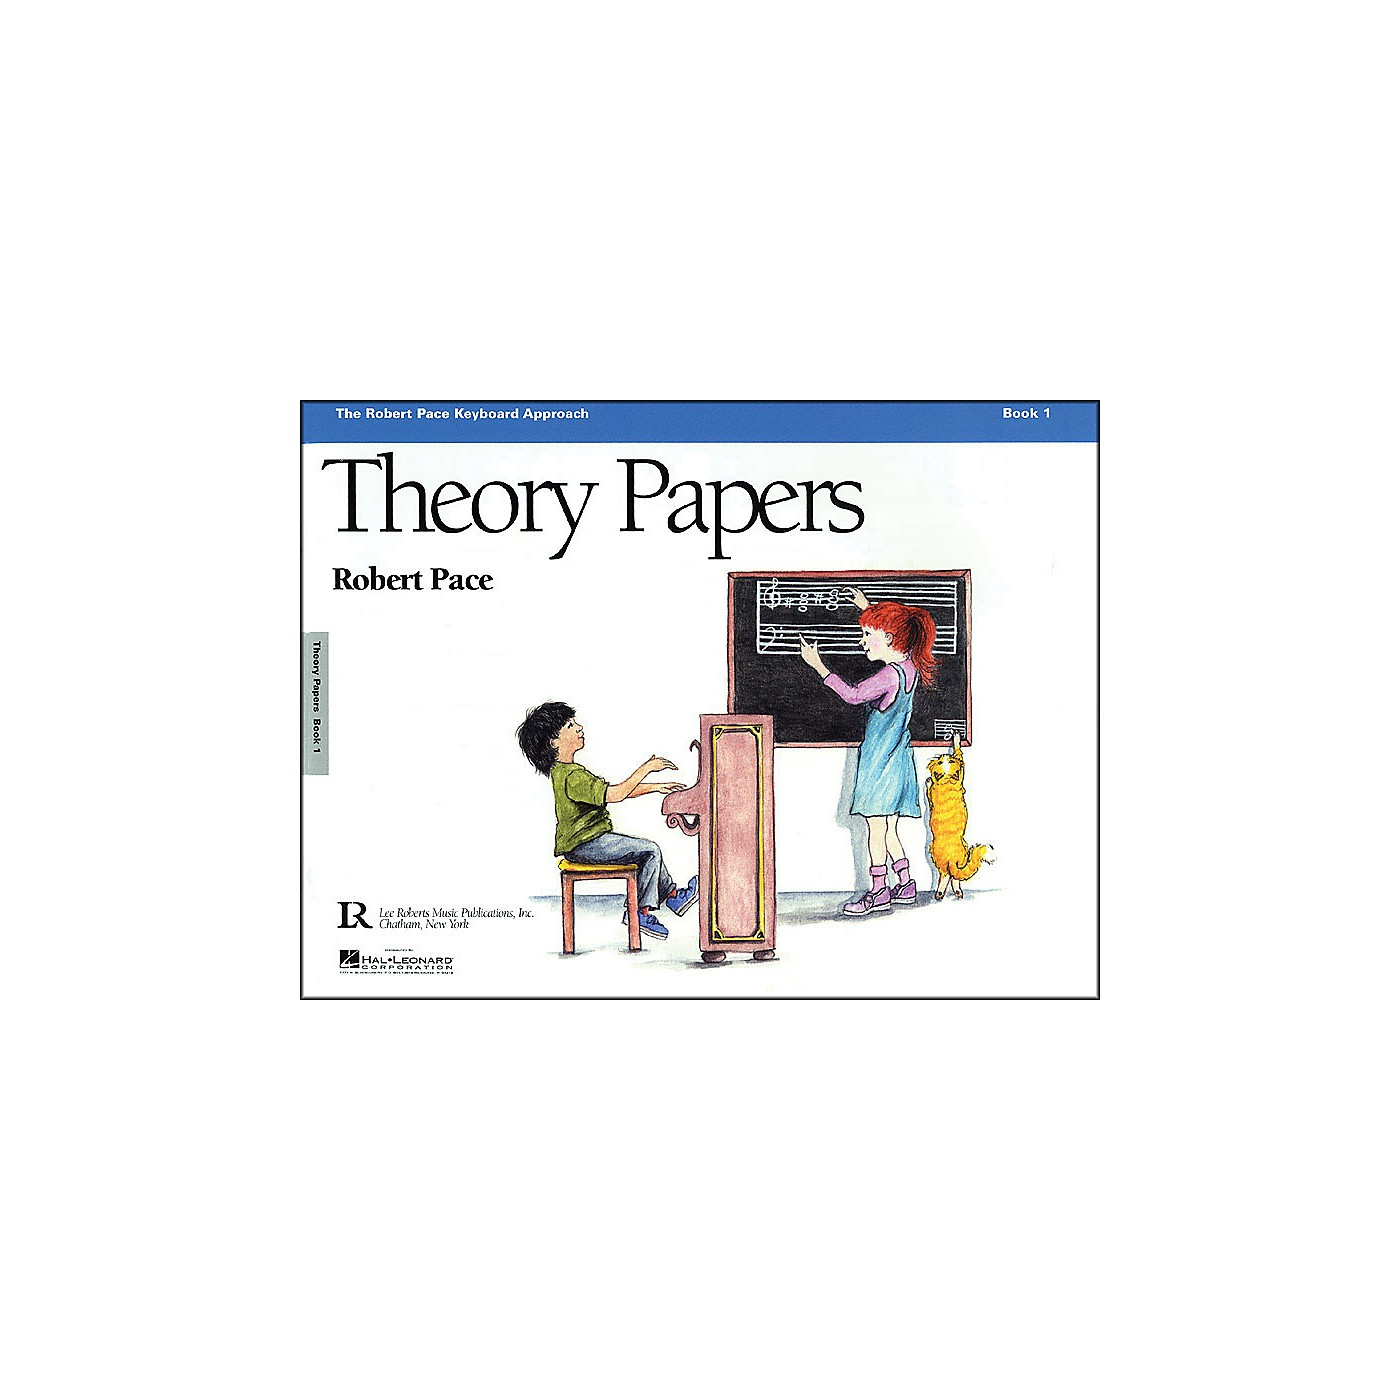 Hal Leonard Theory Papers Book 1 Revised thumbnail